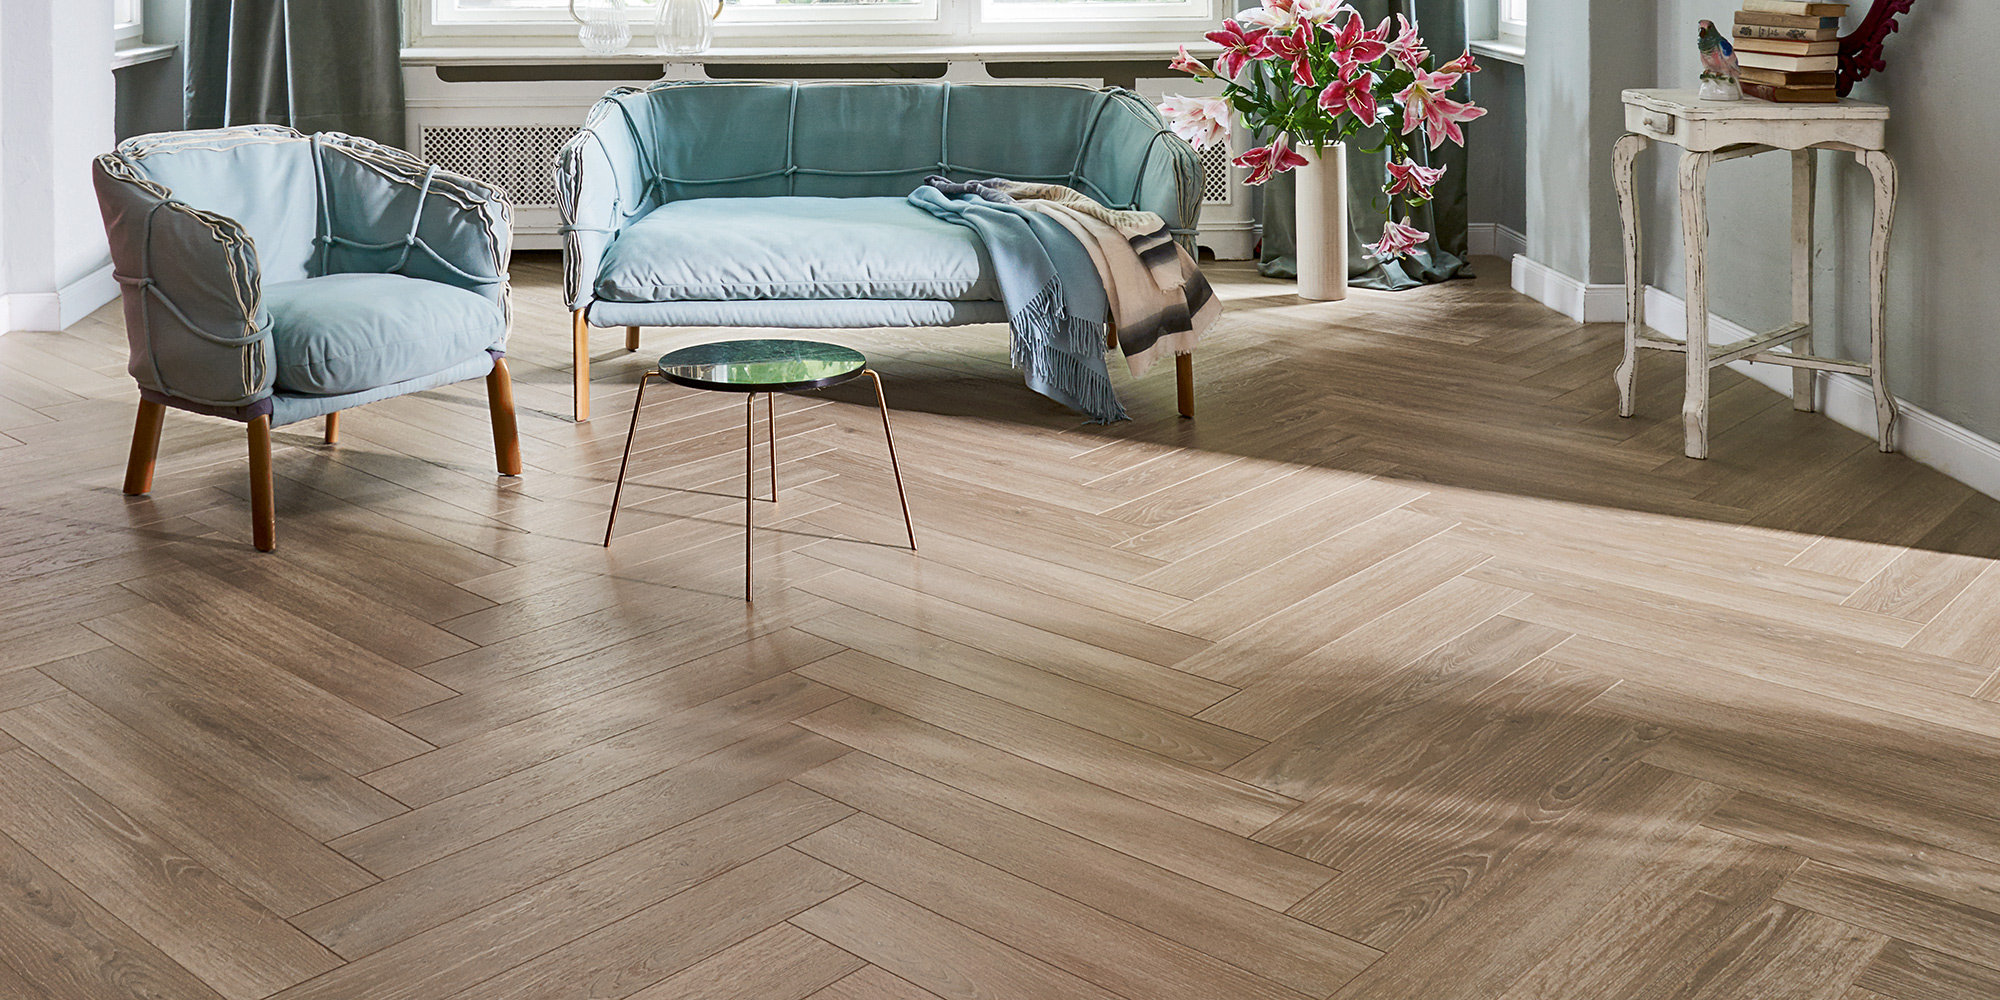 Parador Trendtime 3. 8mm herringbone laminate flooring with AC4 rating and class 32.